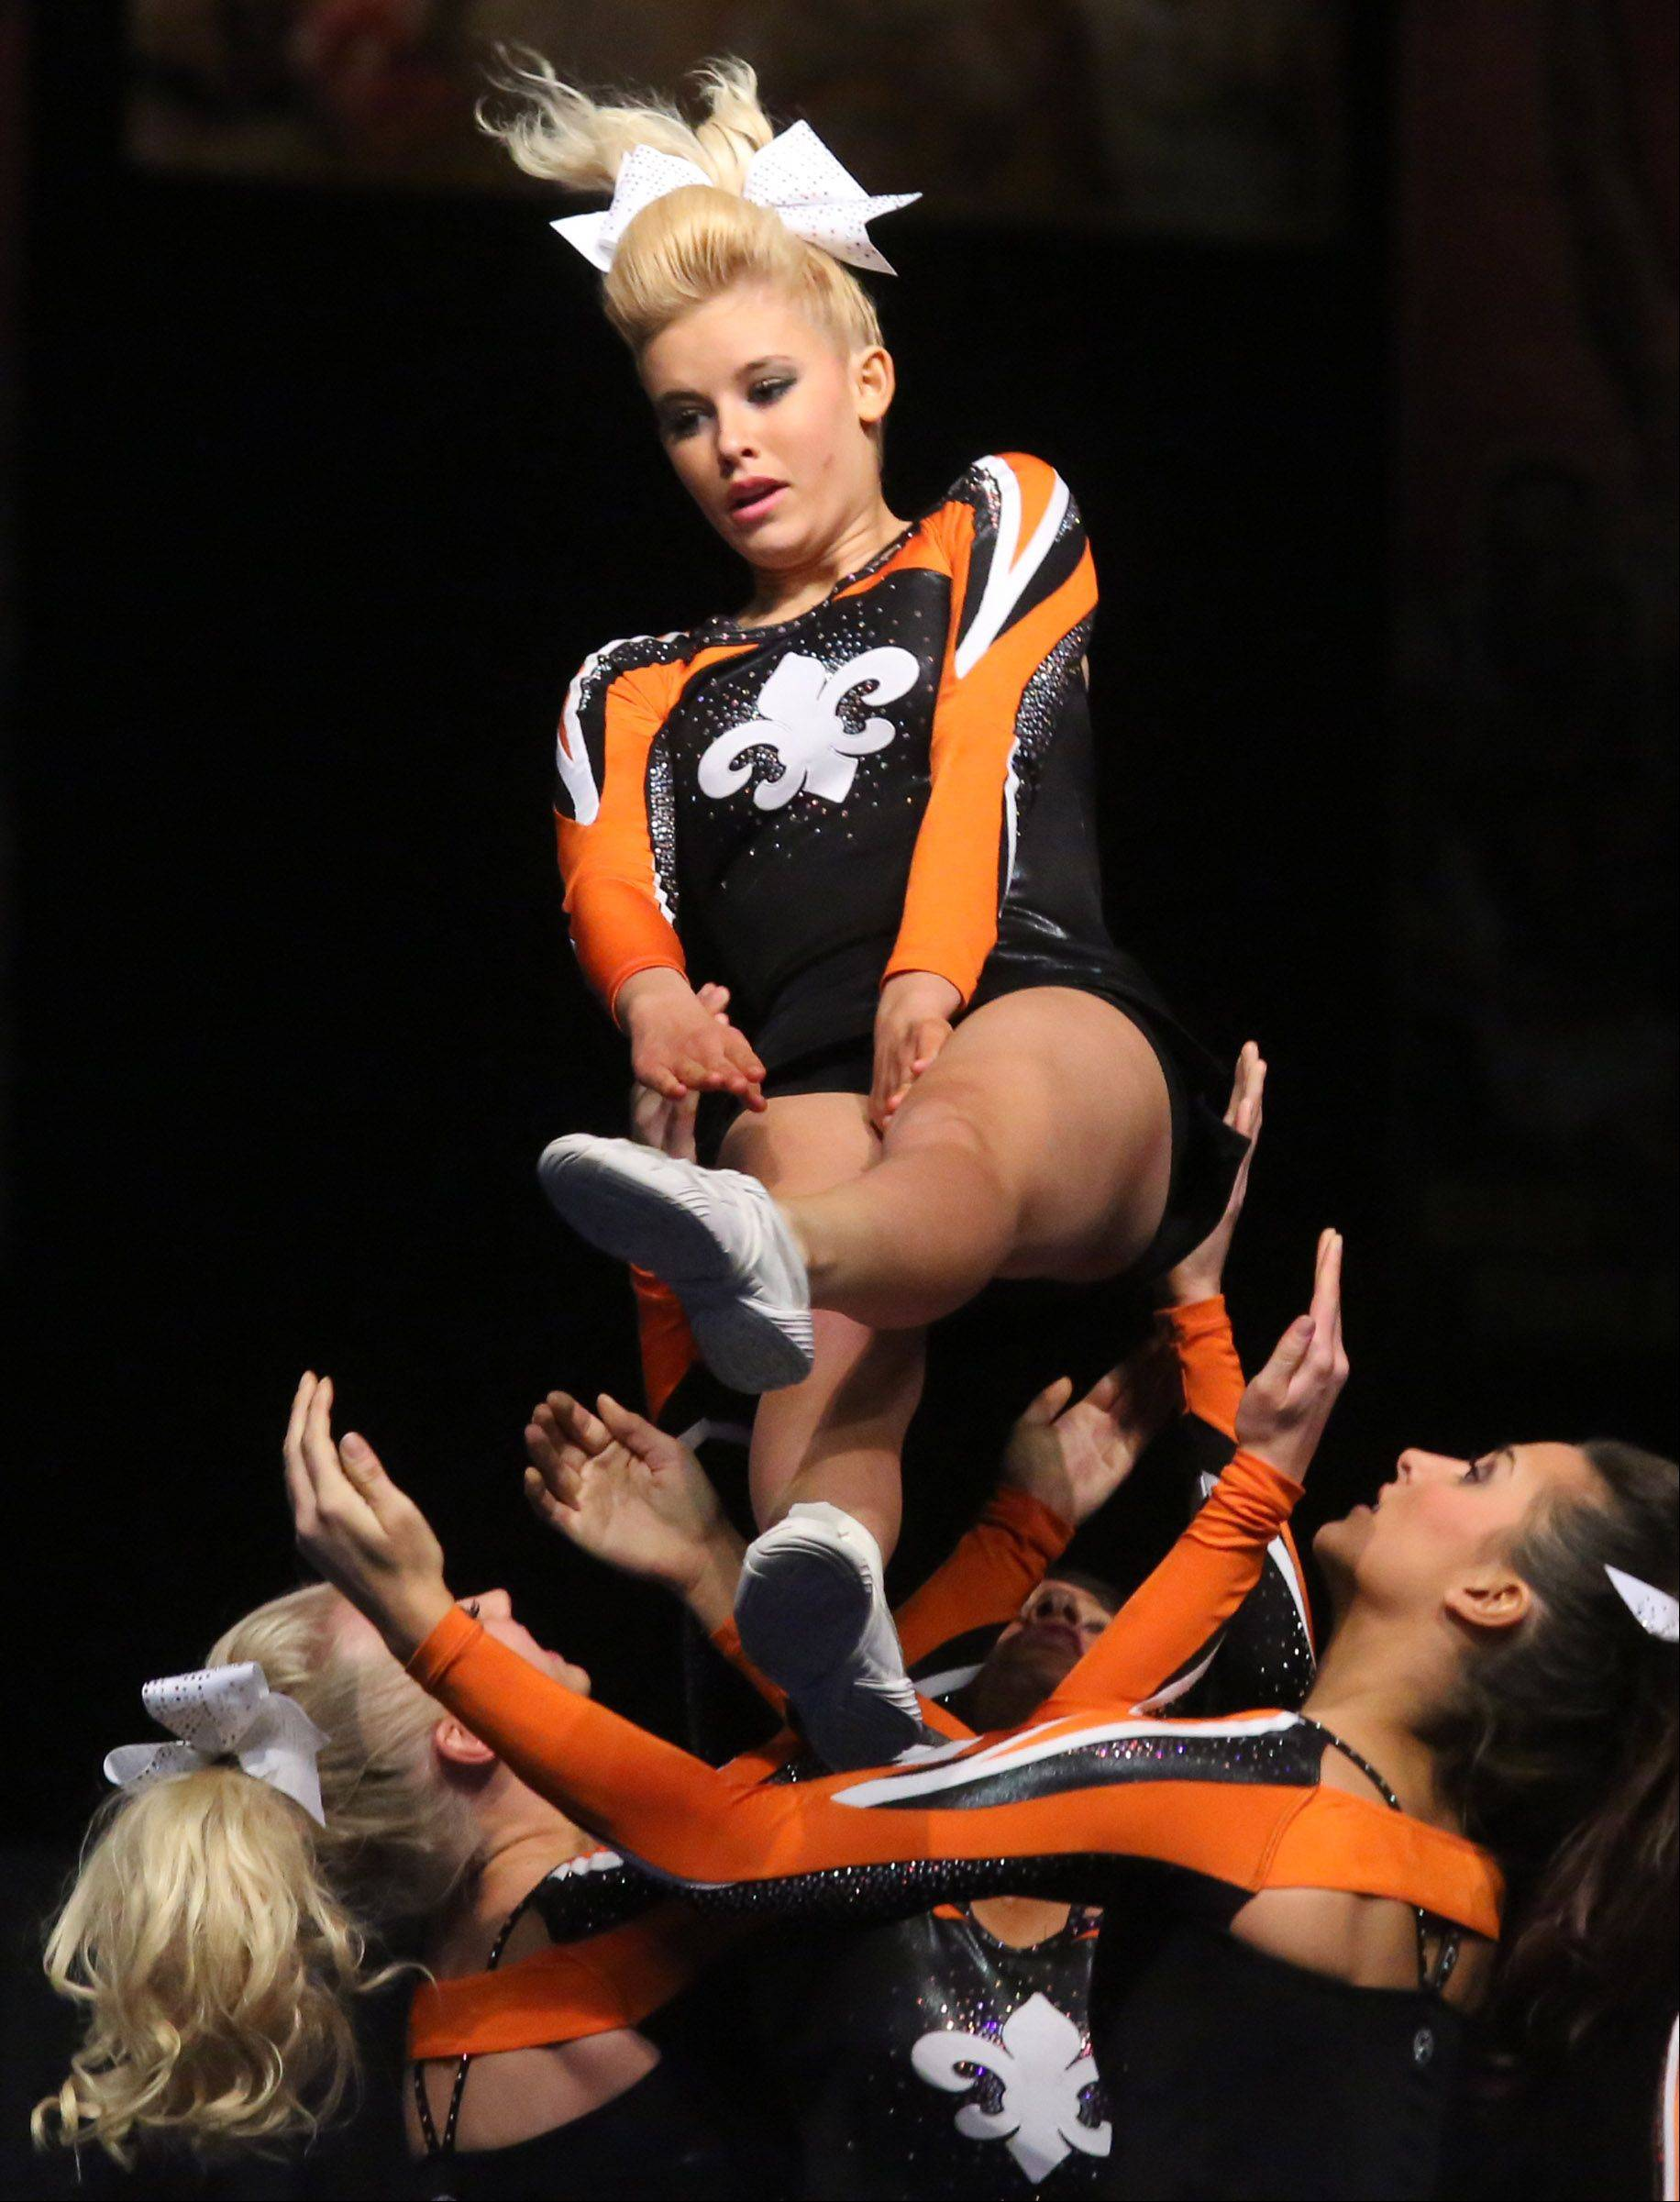 St. Charles East High School's cheer team performs in the large team category.